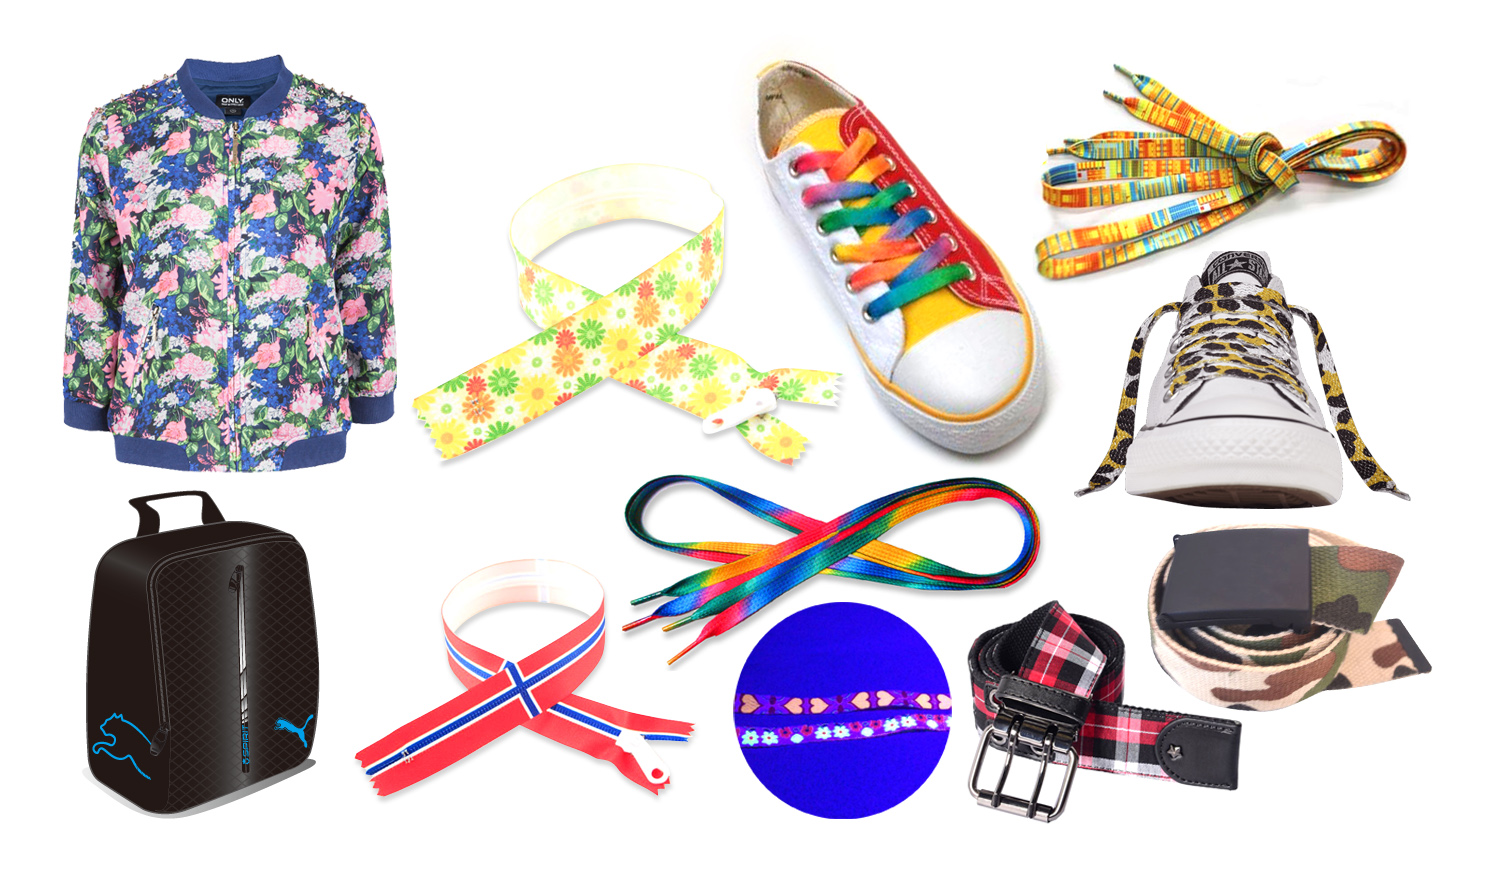 Printed garment accessories